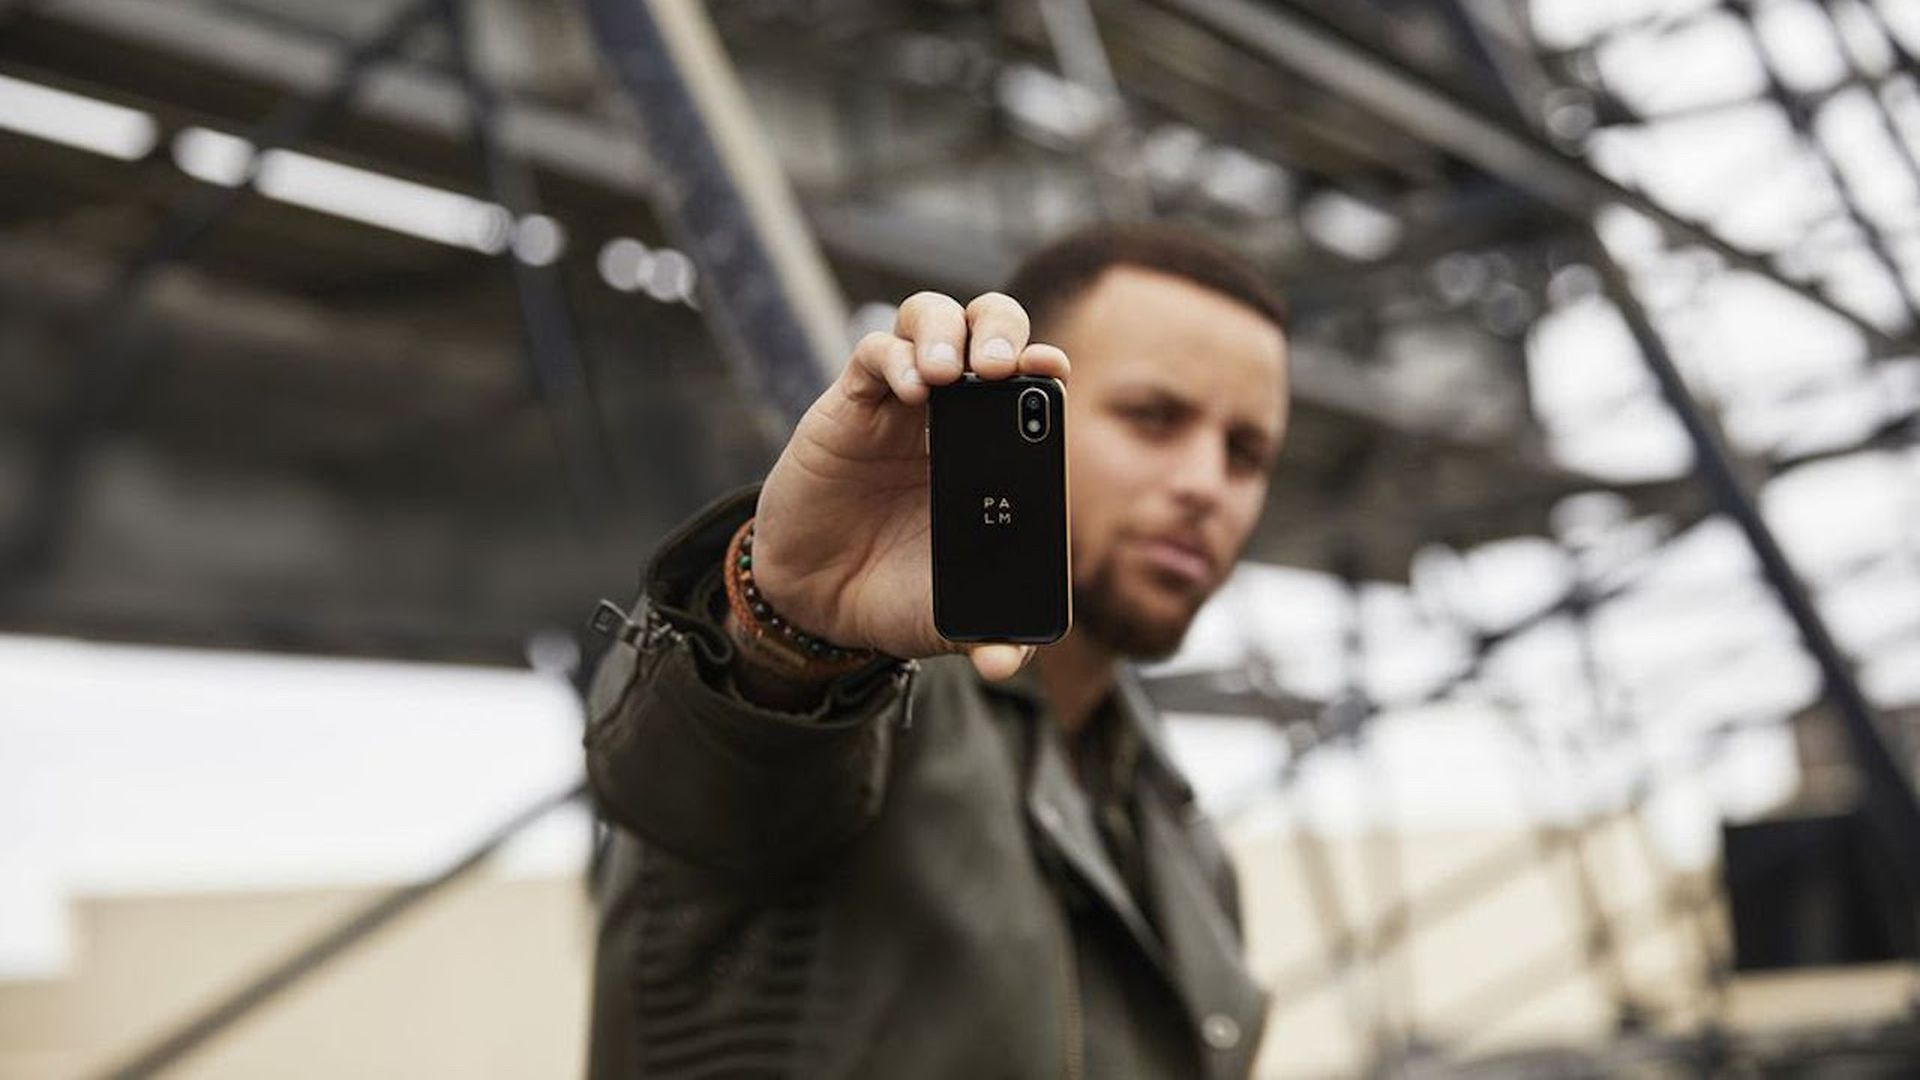 Steph Curry holding up a Palm phone.